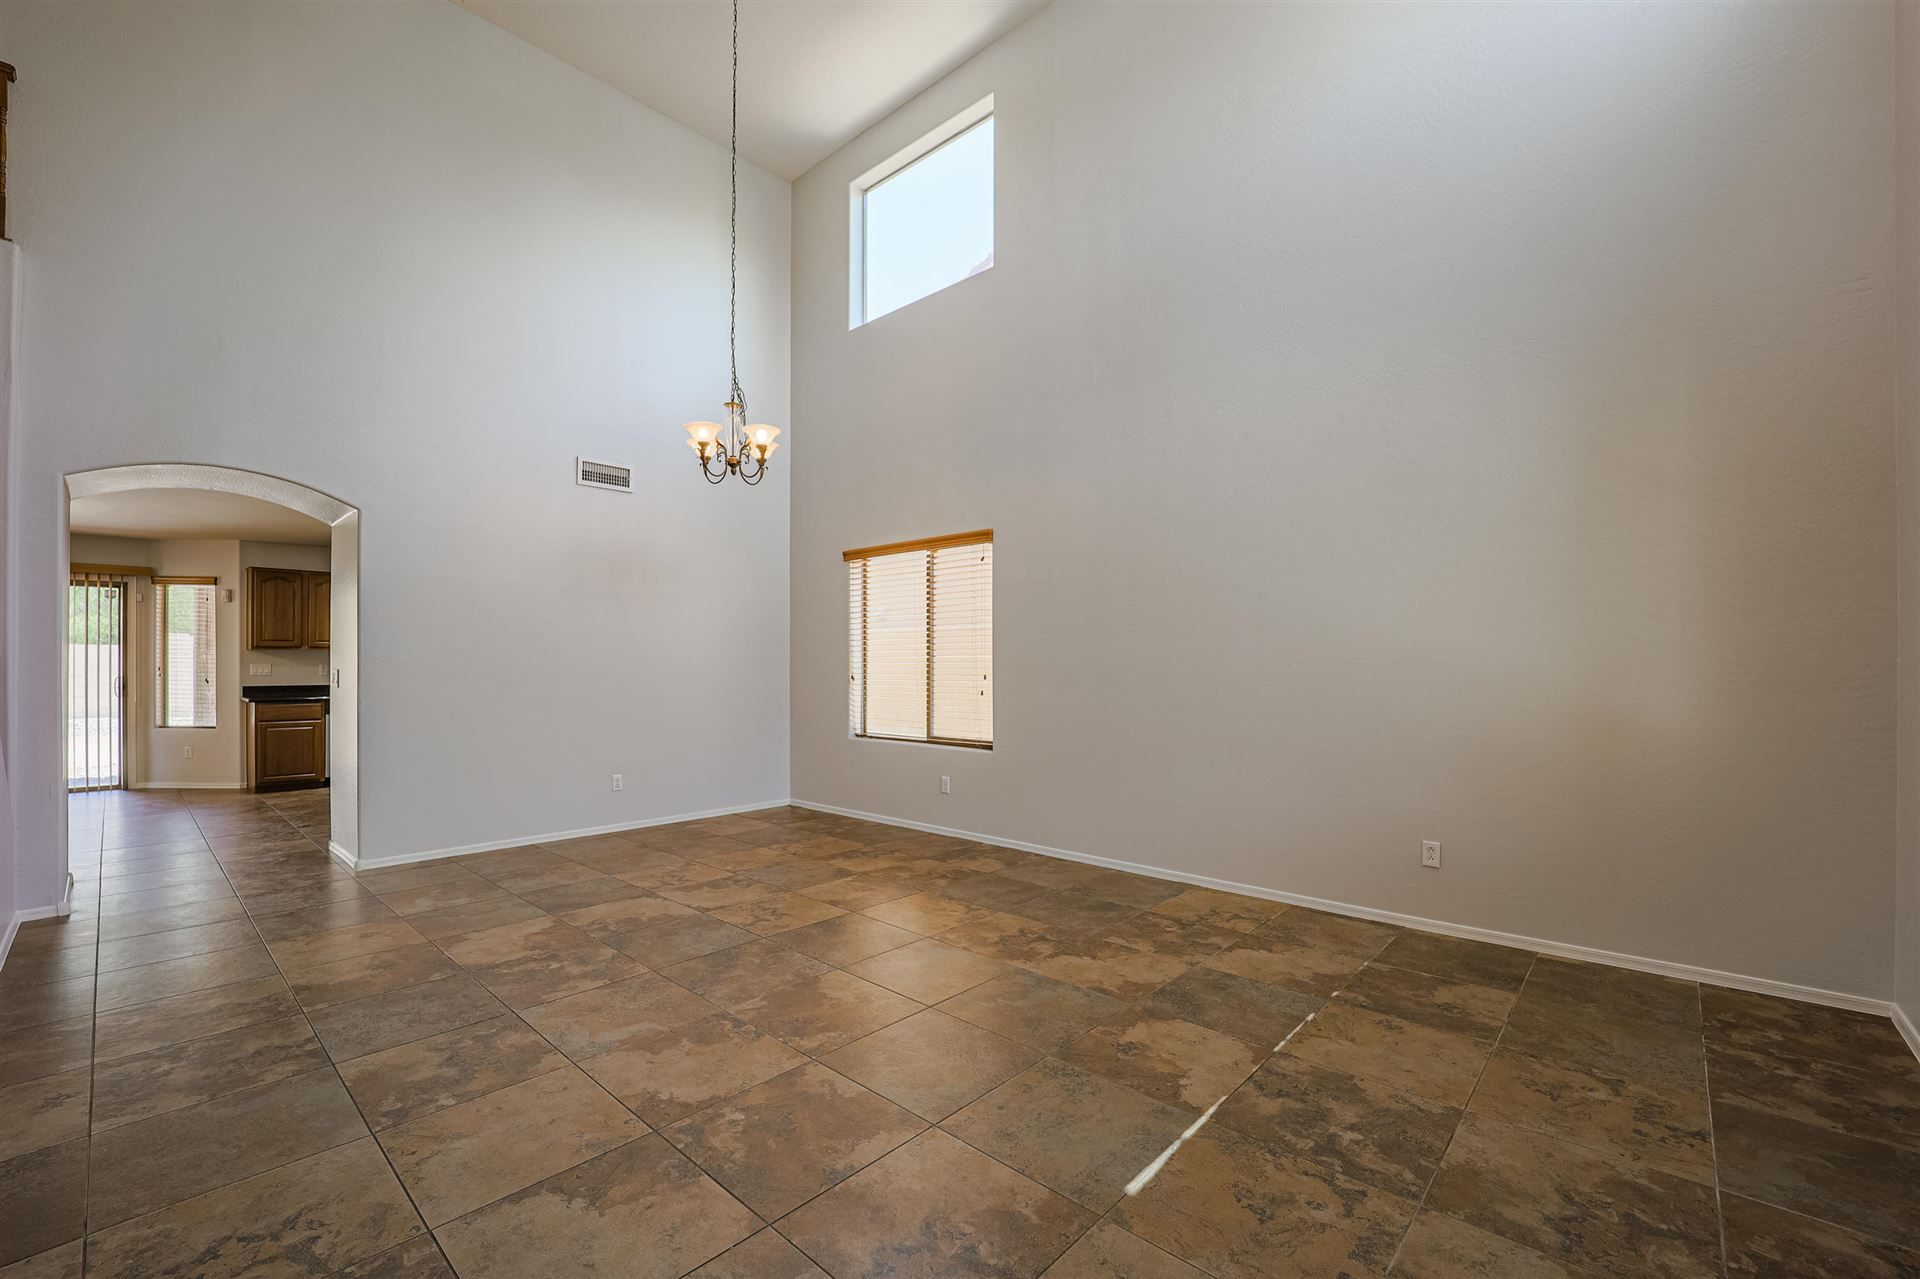 Photo of 9322 W KINGMAN Street, Tolleson, AZ 85353 (MLS # 6226490)